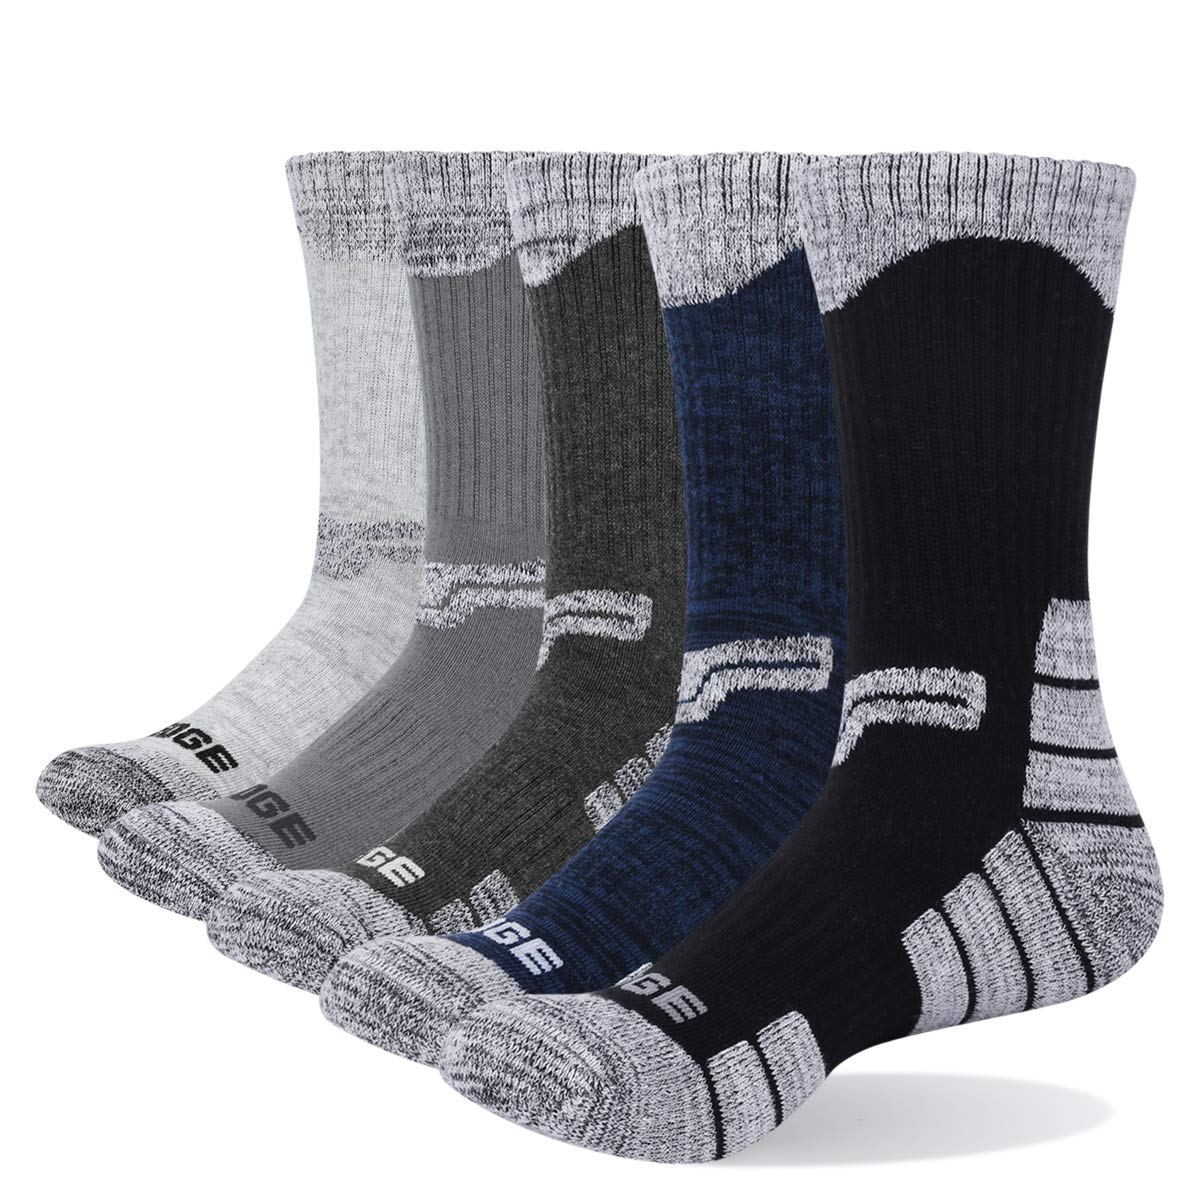 YUEDGE Men's Cotton Cushion Crew Socks Casual Athletic Walking Hiking Socks (5 Pairs/Pack XL) by YUEDGE